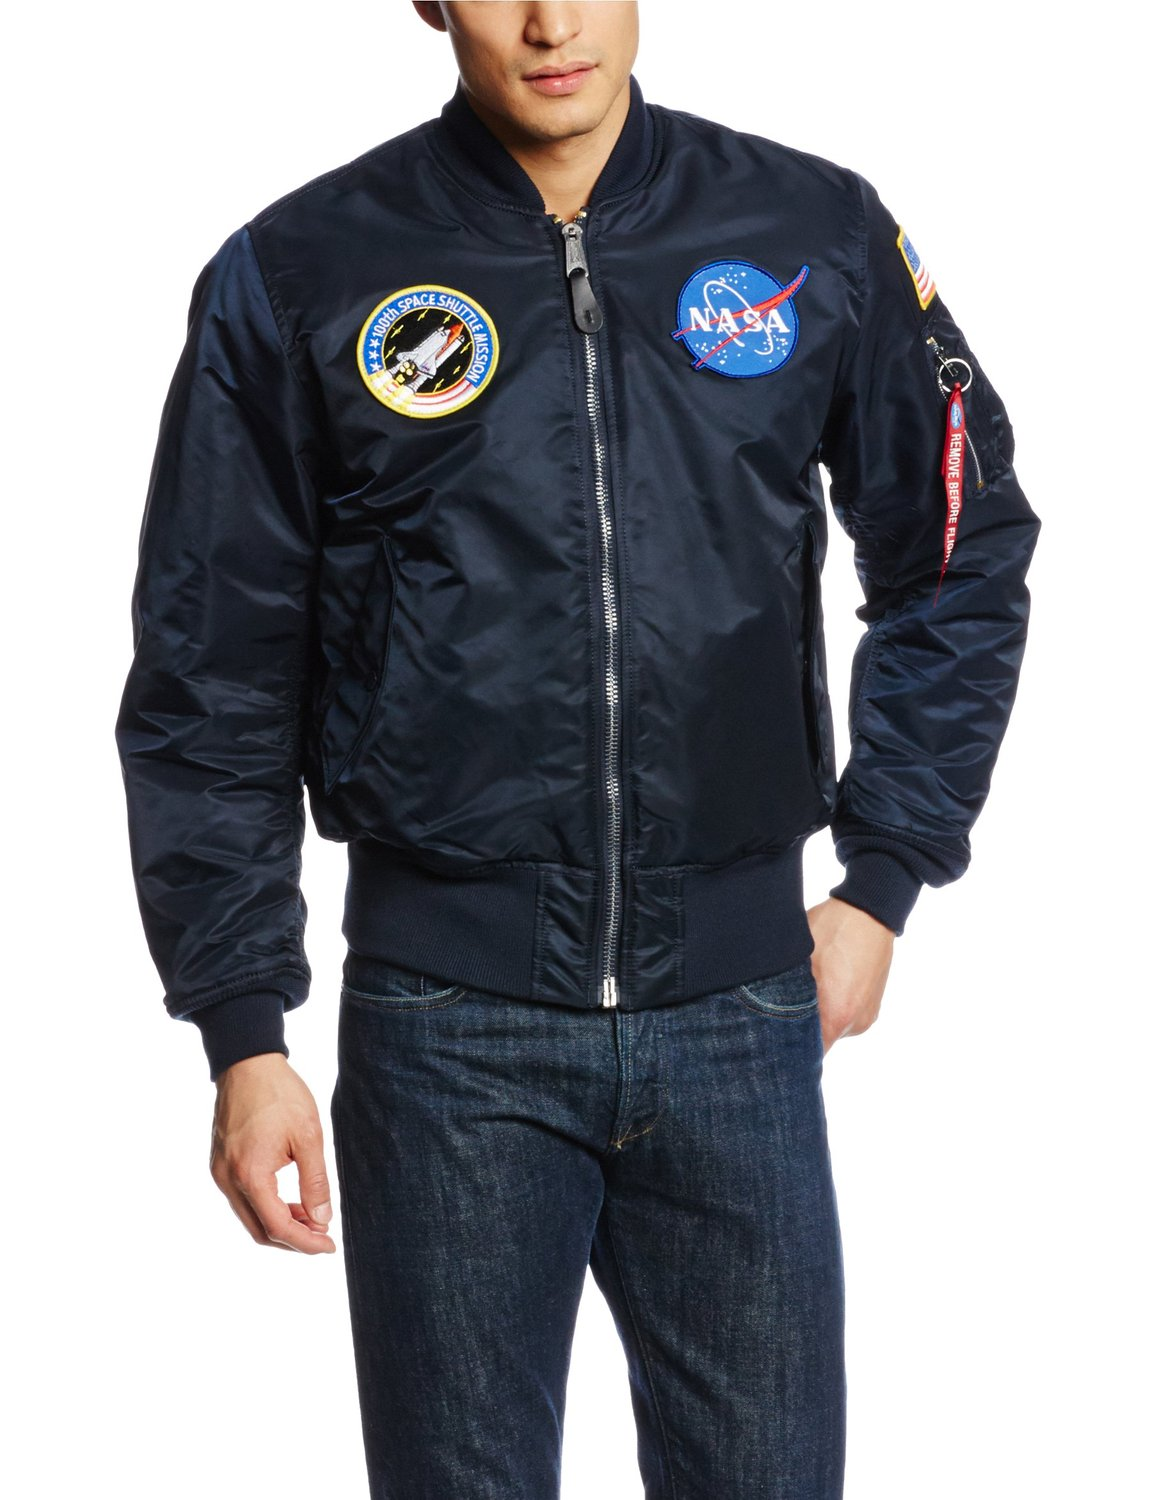 a01d6e5ace7 Buy Alpha Industries Mens NASA Flight Suit in Cheap Price on Alibaba.com